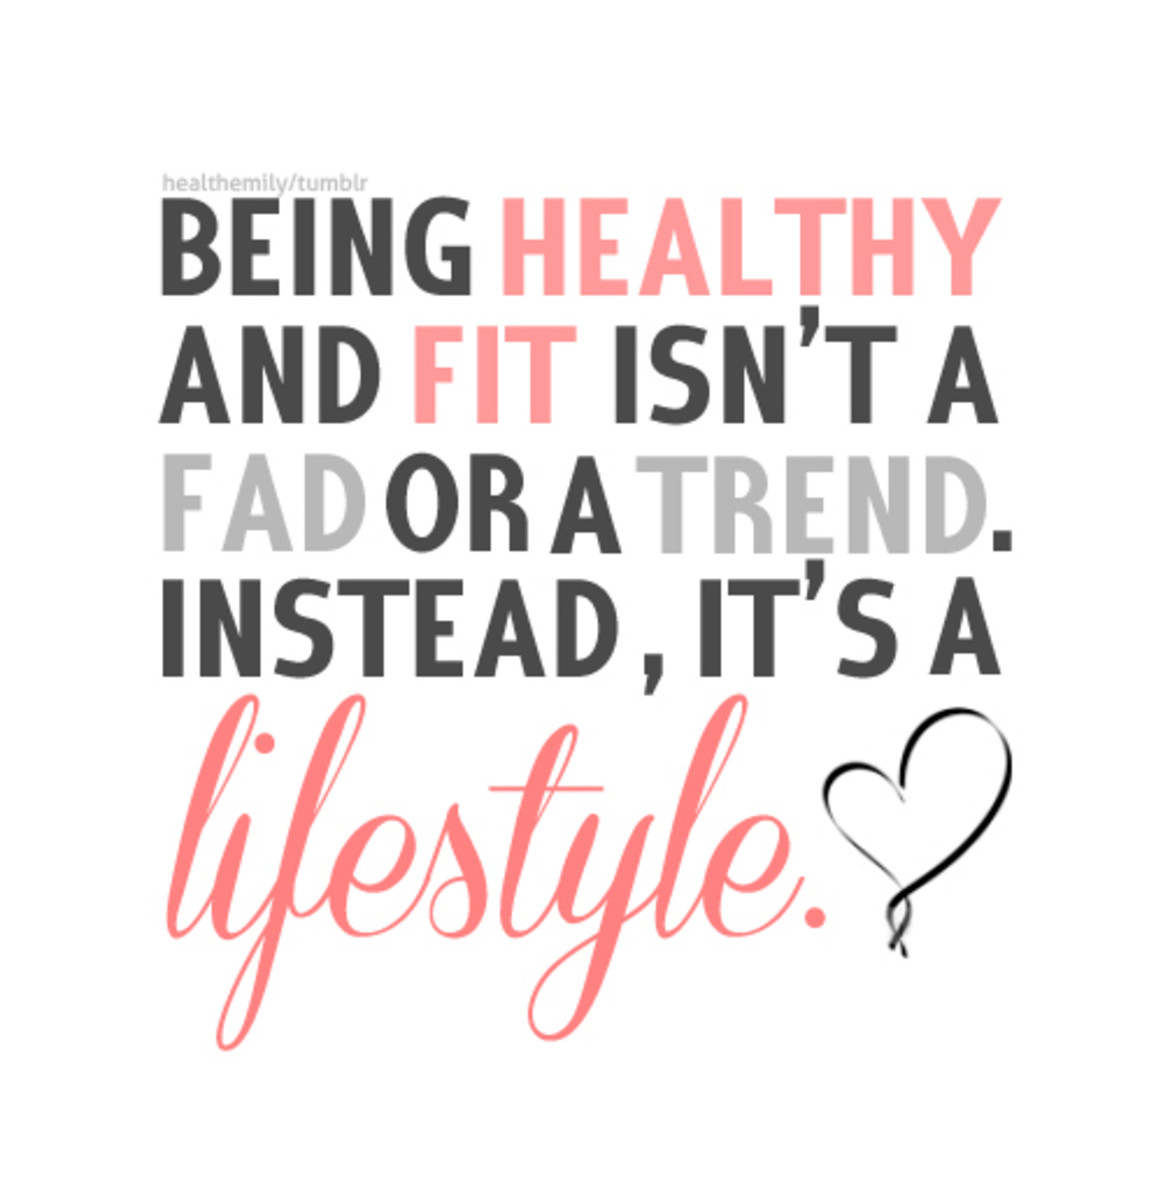 Healthy lifestyle is the key to lose those extra pounds